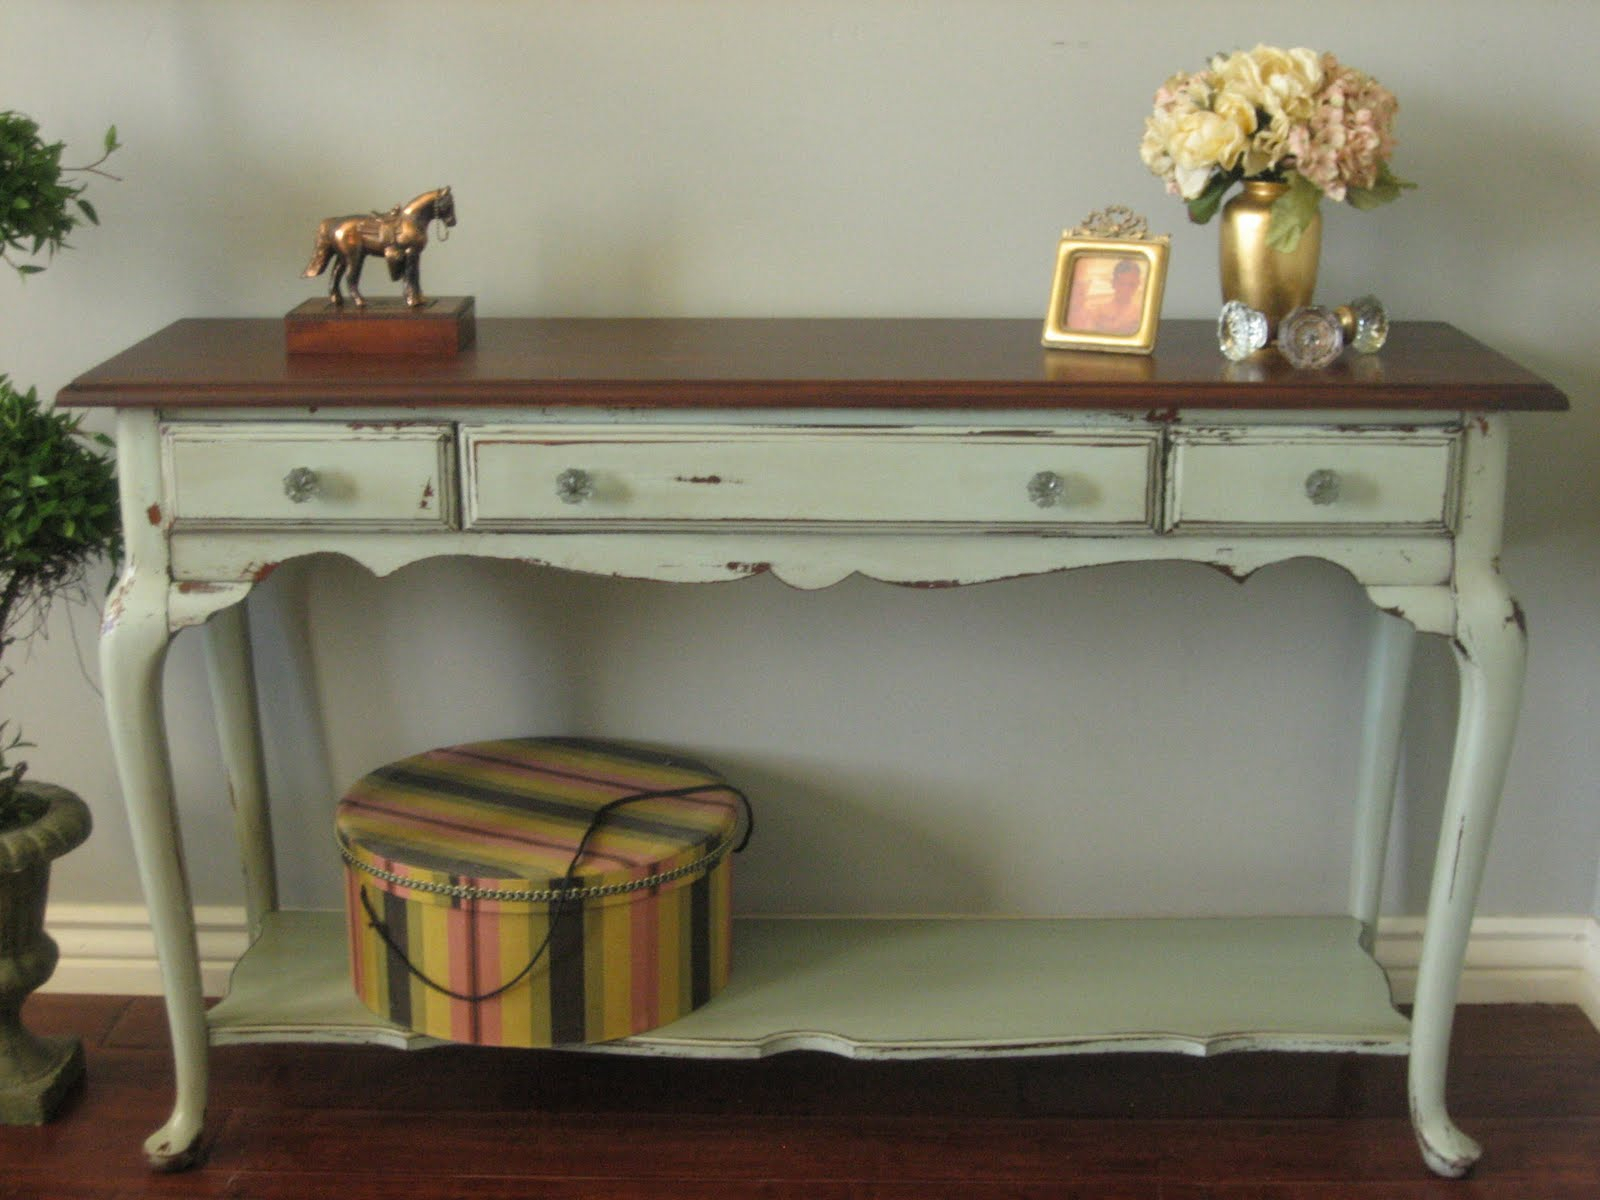 Sofa Tables: Astonish Distressed Sofa Tables Design Rustic Console With Antique White Distressed Console Tables (View 11 of 30)